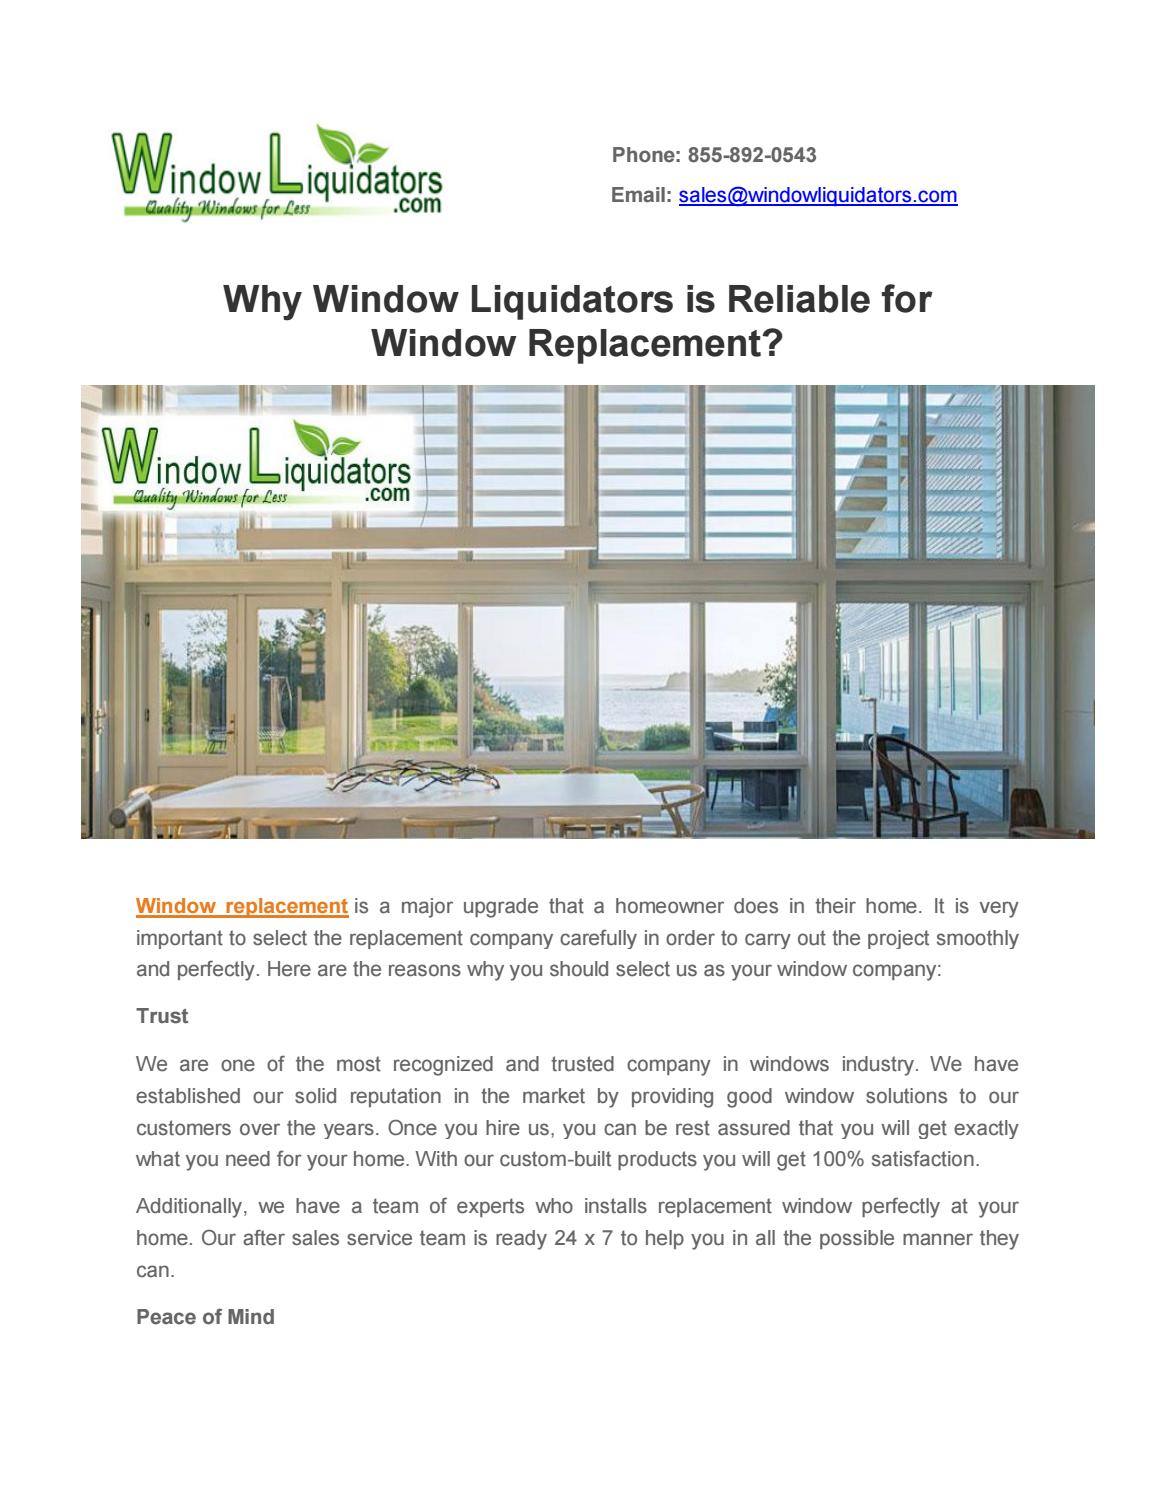 Why window liquidators is reliable for window replacement by